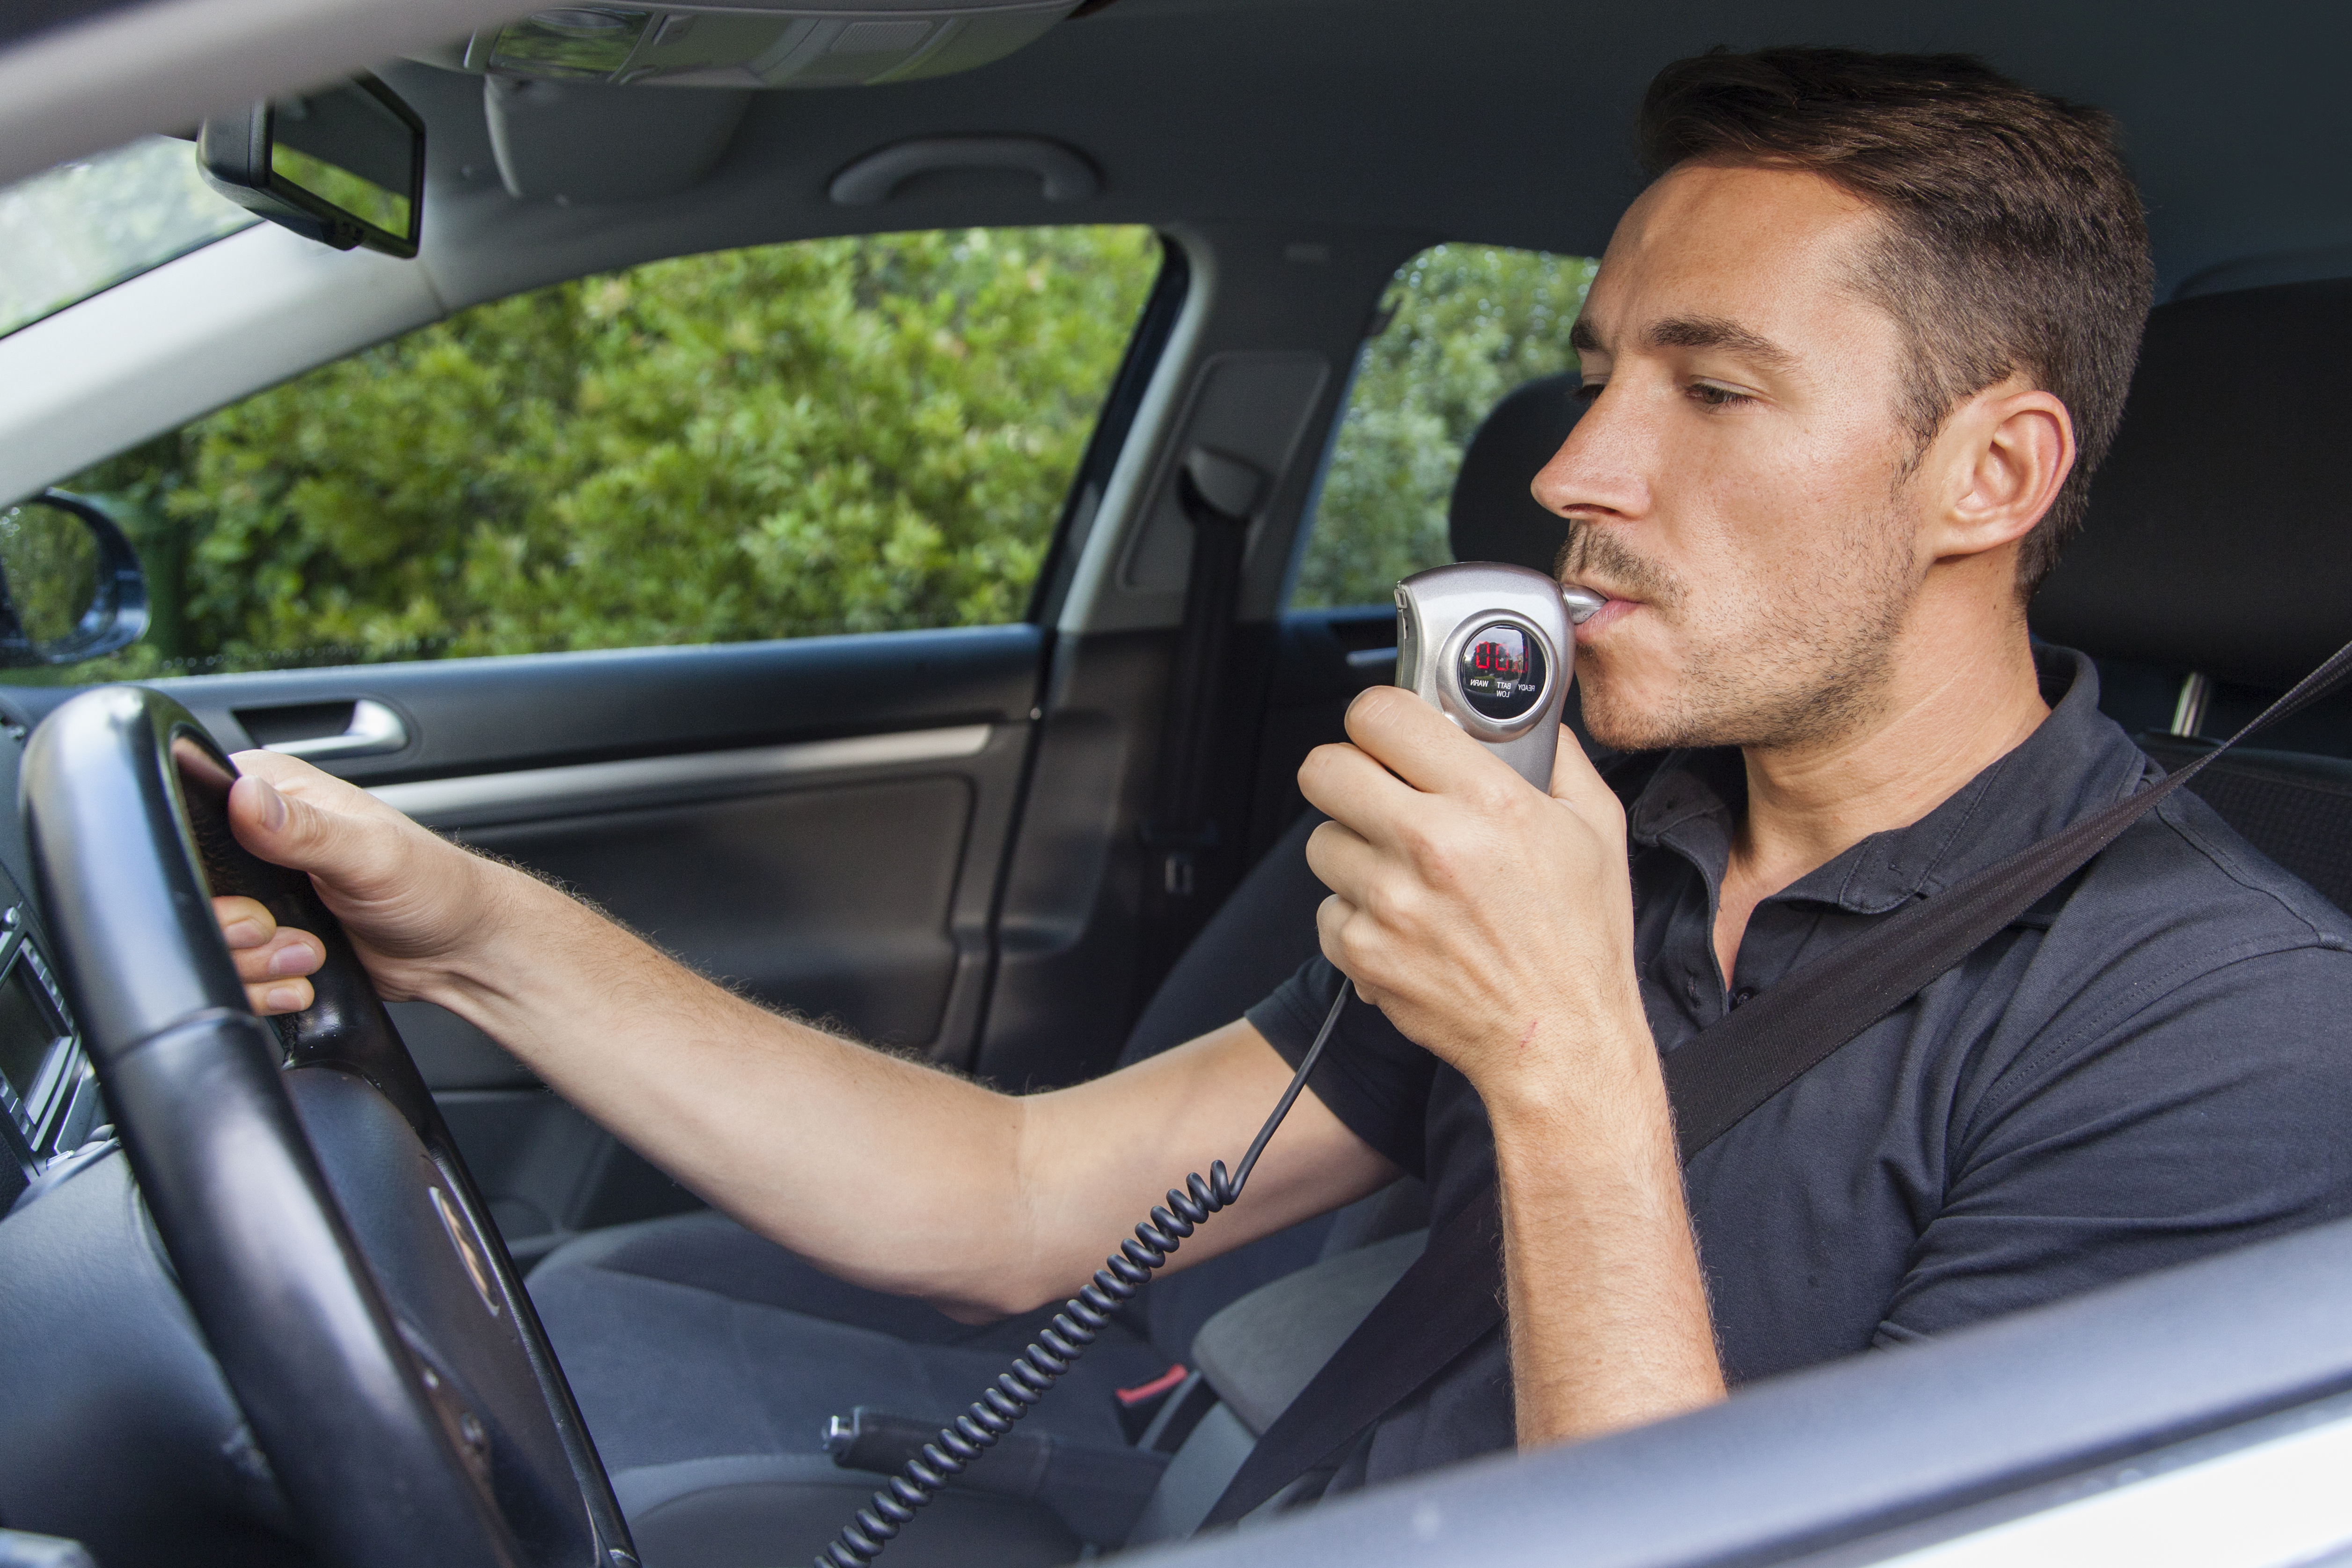 Breathalyzer For Car >> Touchpad Breathalyzers Could Soon Be Standard In Cars Big Think